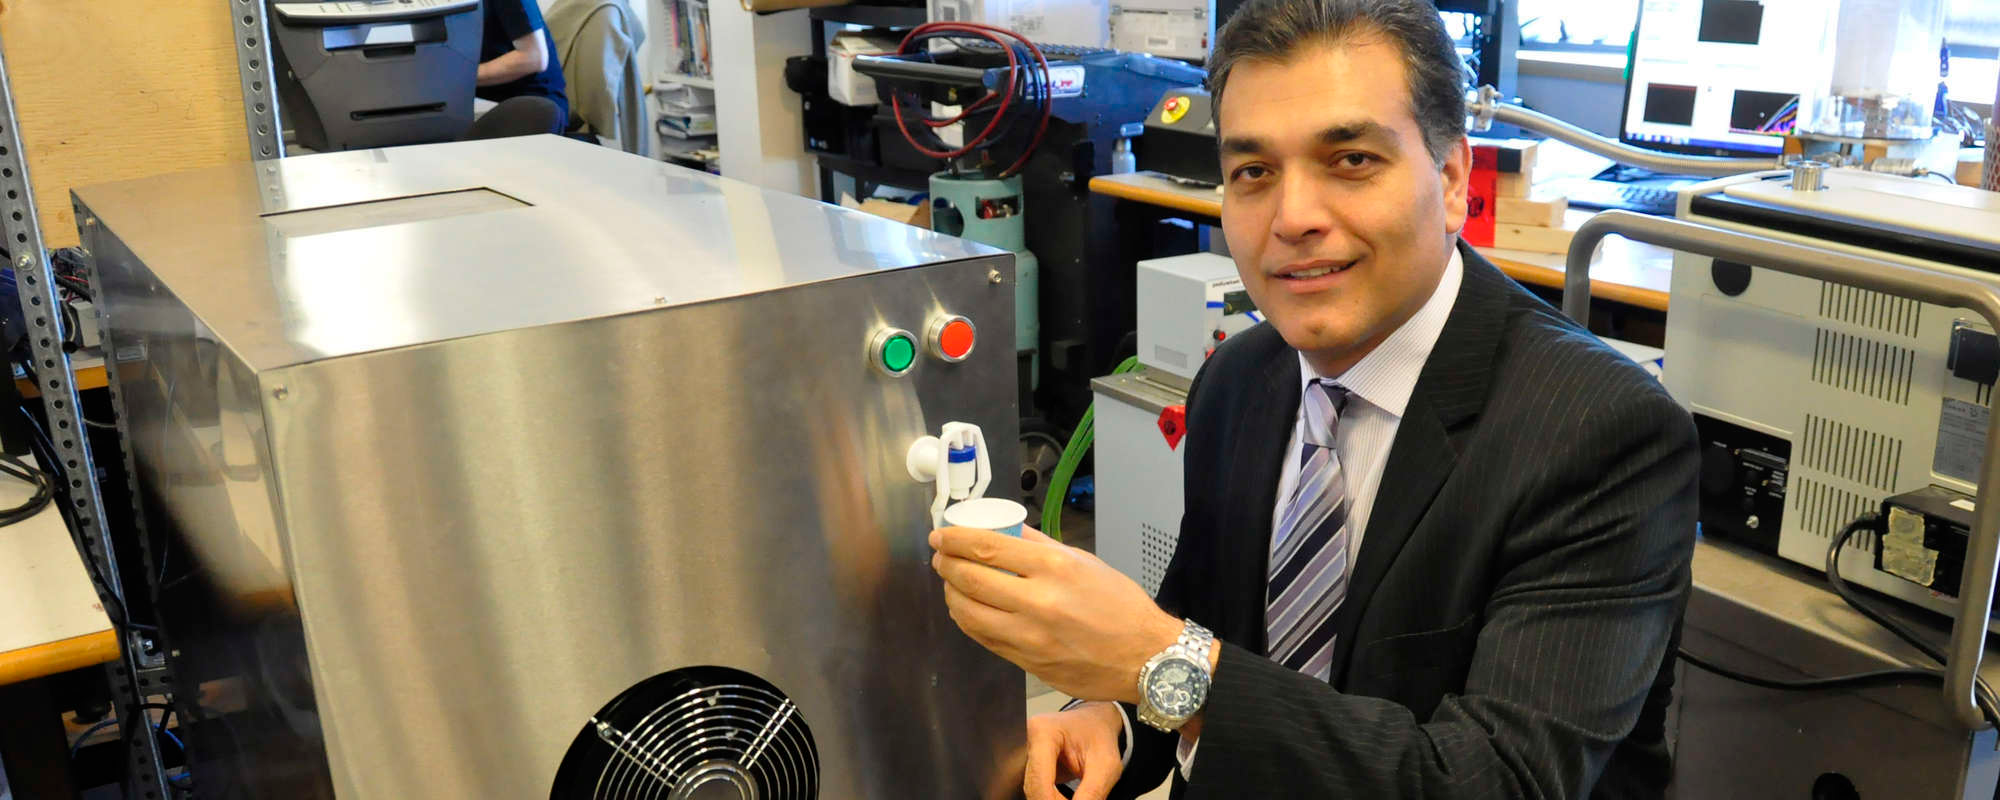 Mechatronics innovation making waves pulling water from air